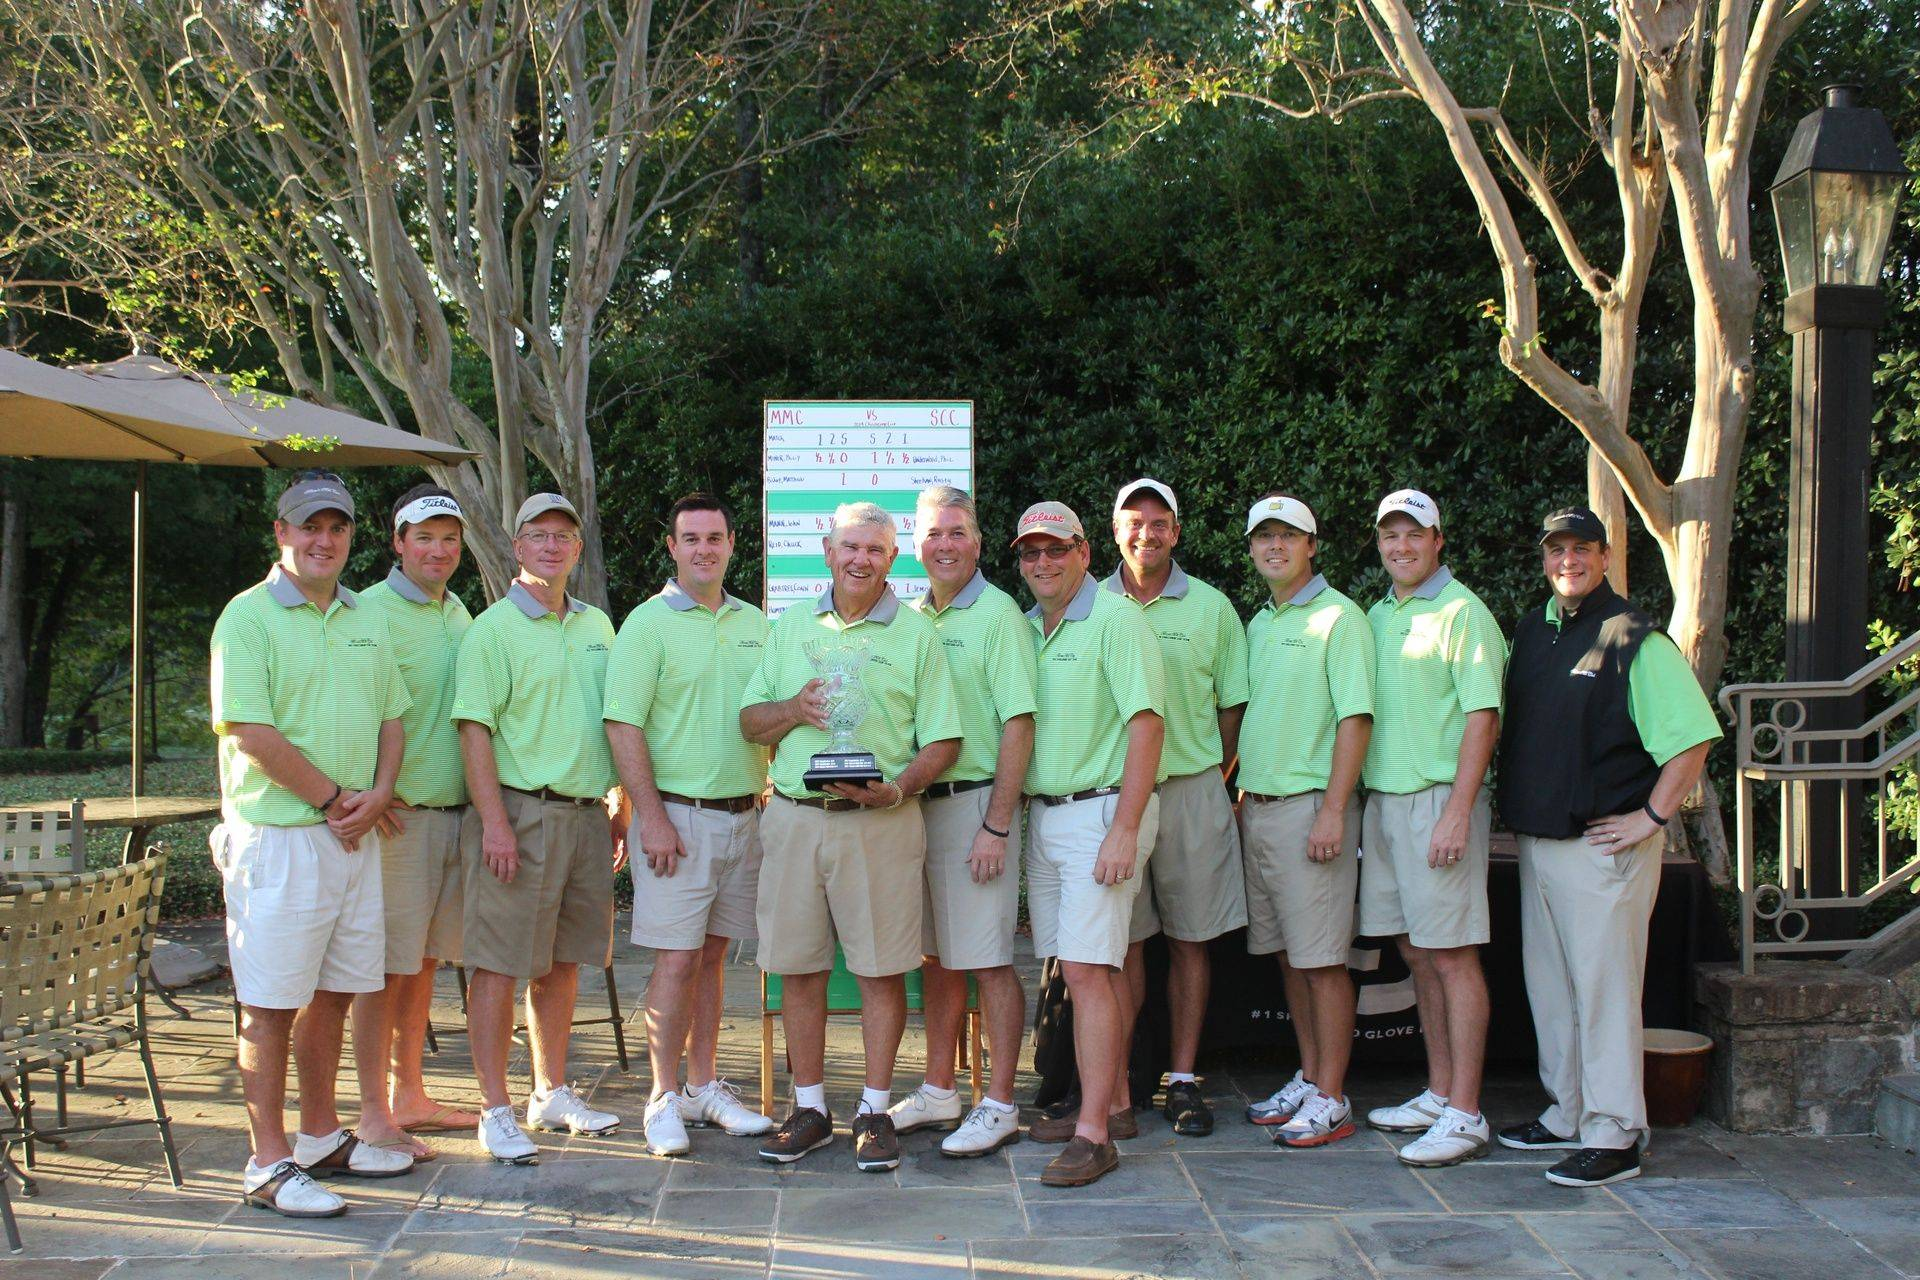 2014  MMC wins Challenge Cup for third straight year defeating Saugahatchee CC 13.5 to 10.5!  Team Members: Mattew Bishop, Conn Crabtree, Philip Minor, Nathan Turner, Windell Humphries, John Mann, Chuck Reid, Bruce Haman, Jeff Chastain, James Salter, (not pictured) Steve Graham and Troy Maxwell